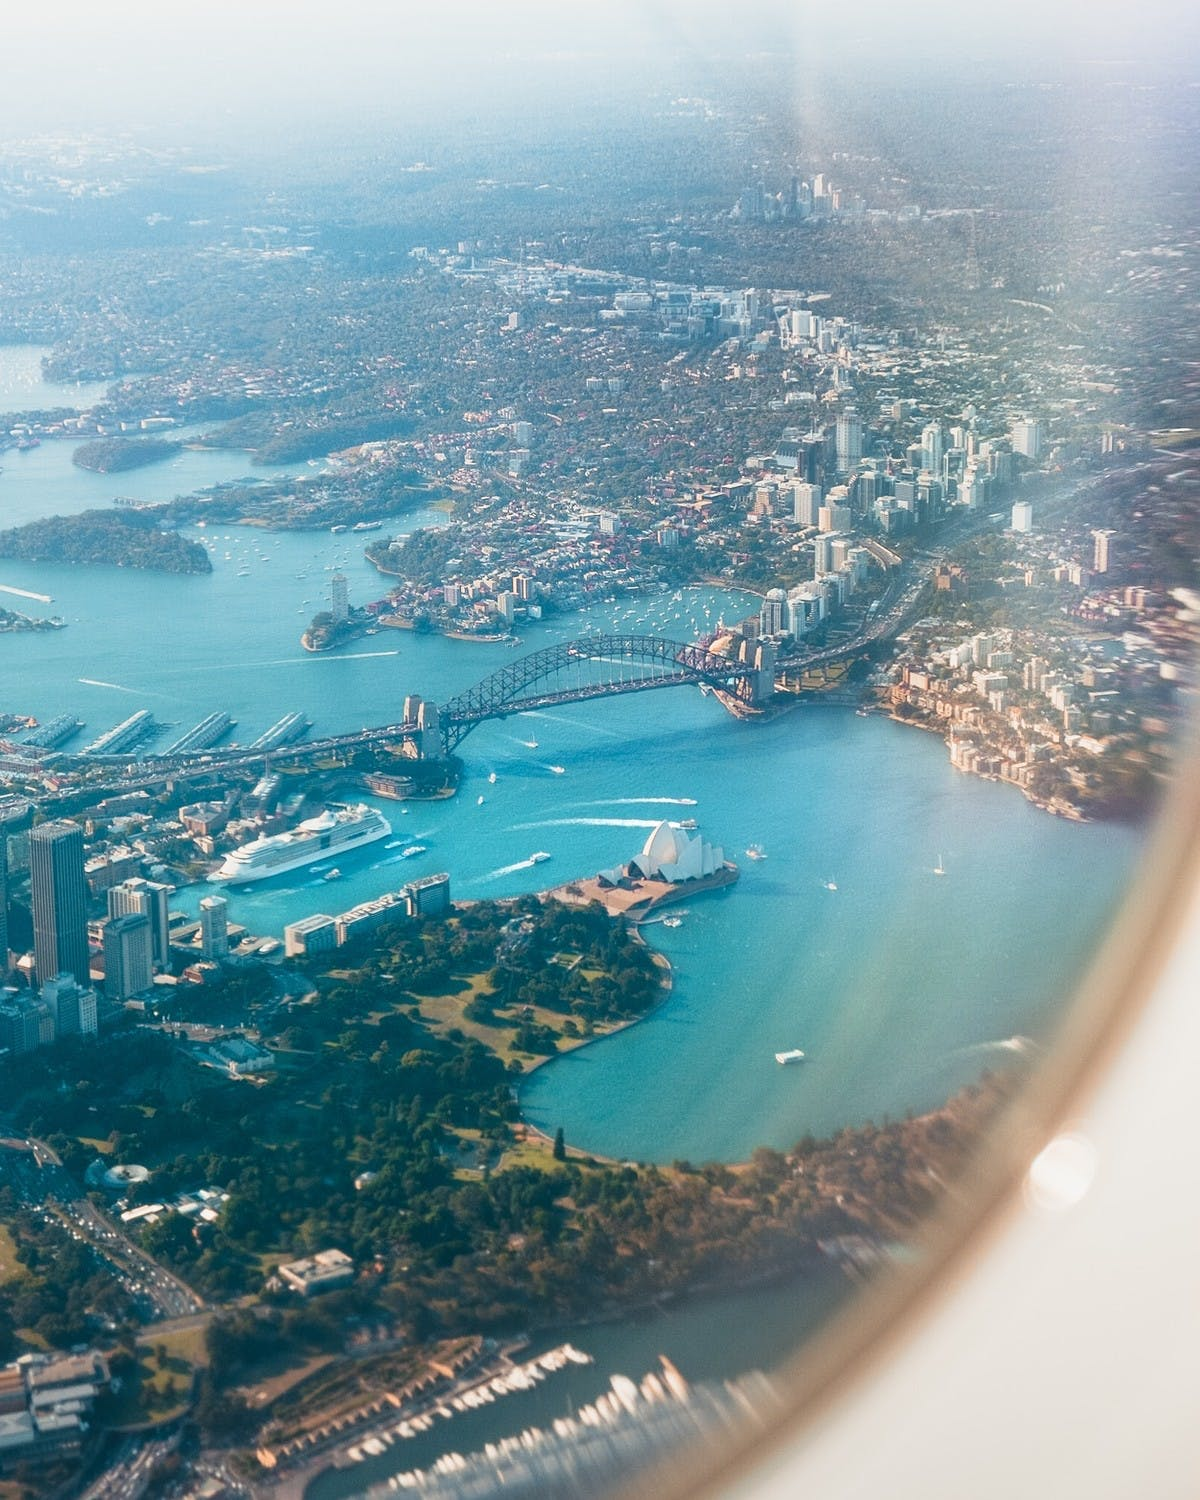 Vue d'avion de Sydney - Photo byLeio McLaren (@leiomclaren) on Unsplash